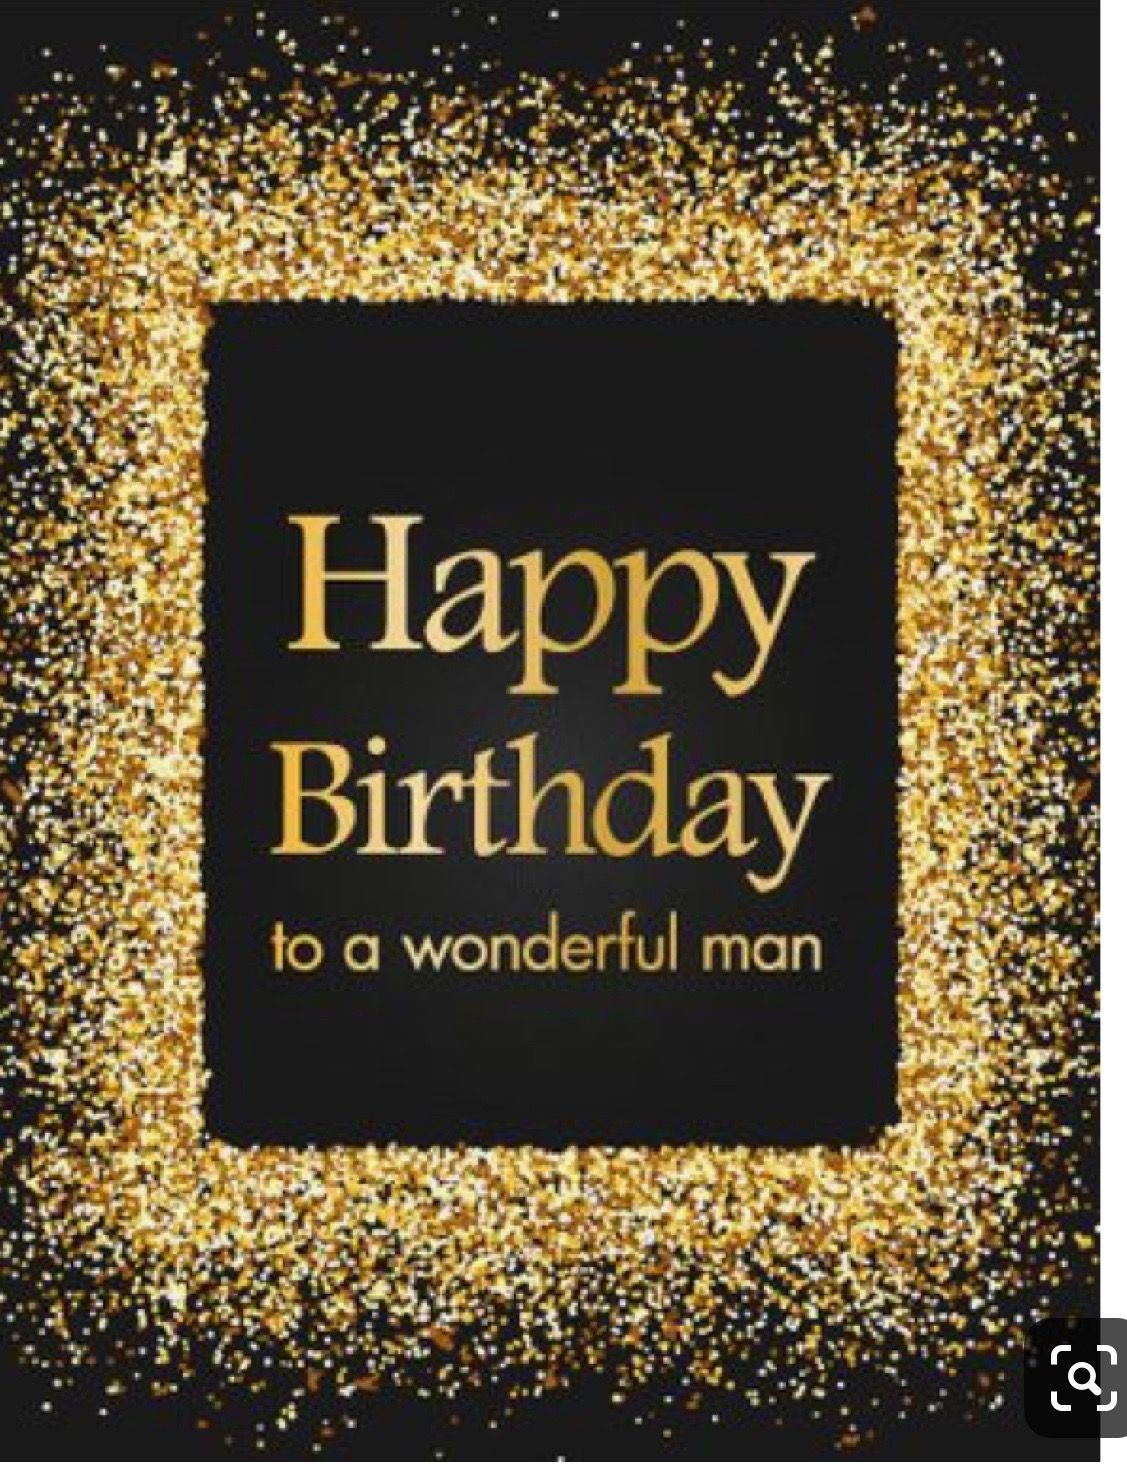 Funny Happy Birthday Ecards For Men Viewing Gallery Happy Birthday Funny Ecards Funny 21st Birthday Wishes Happy Birthday Text